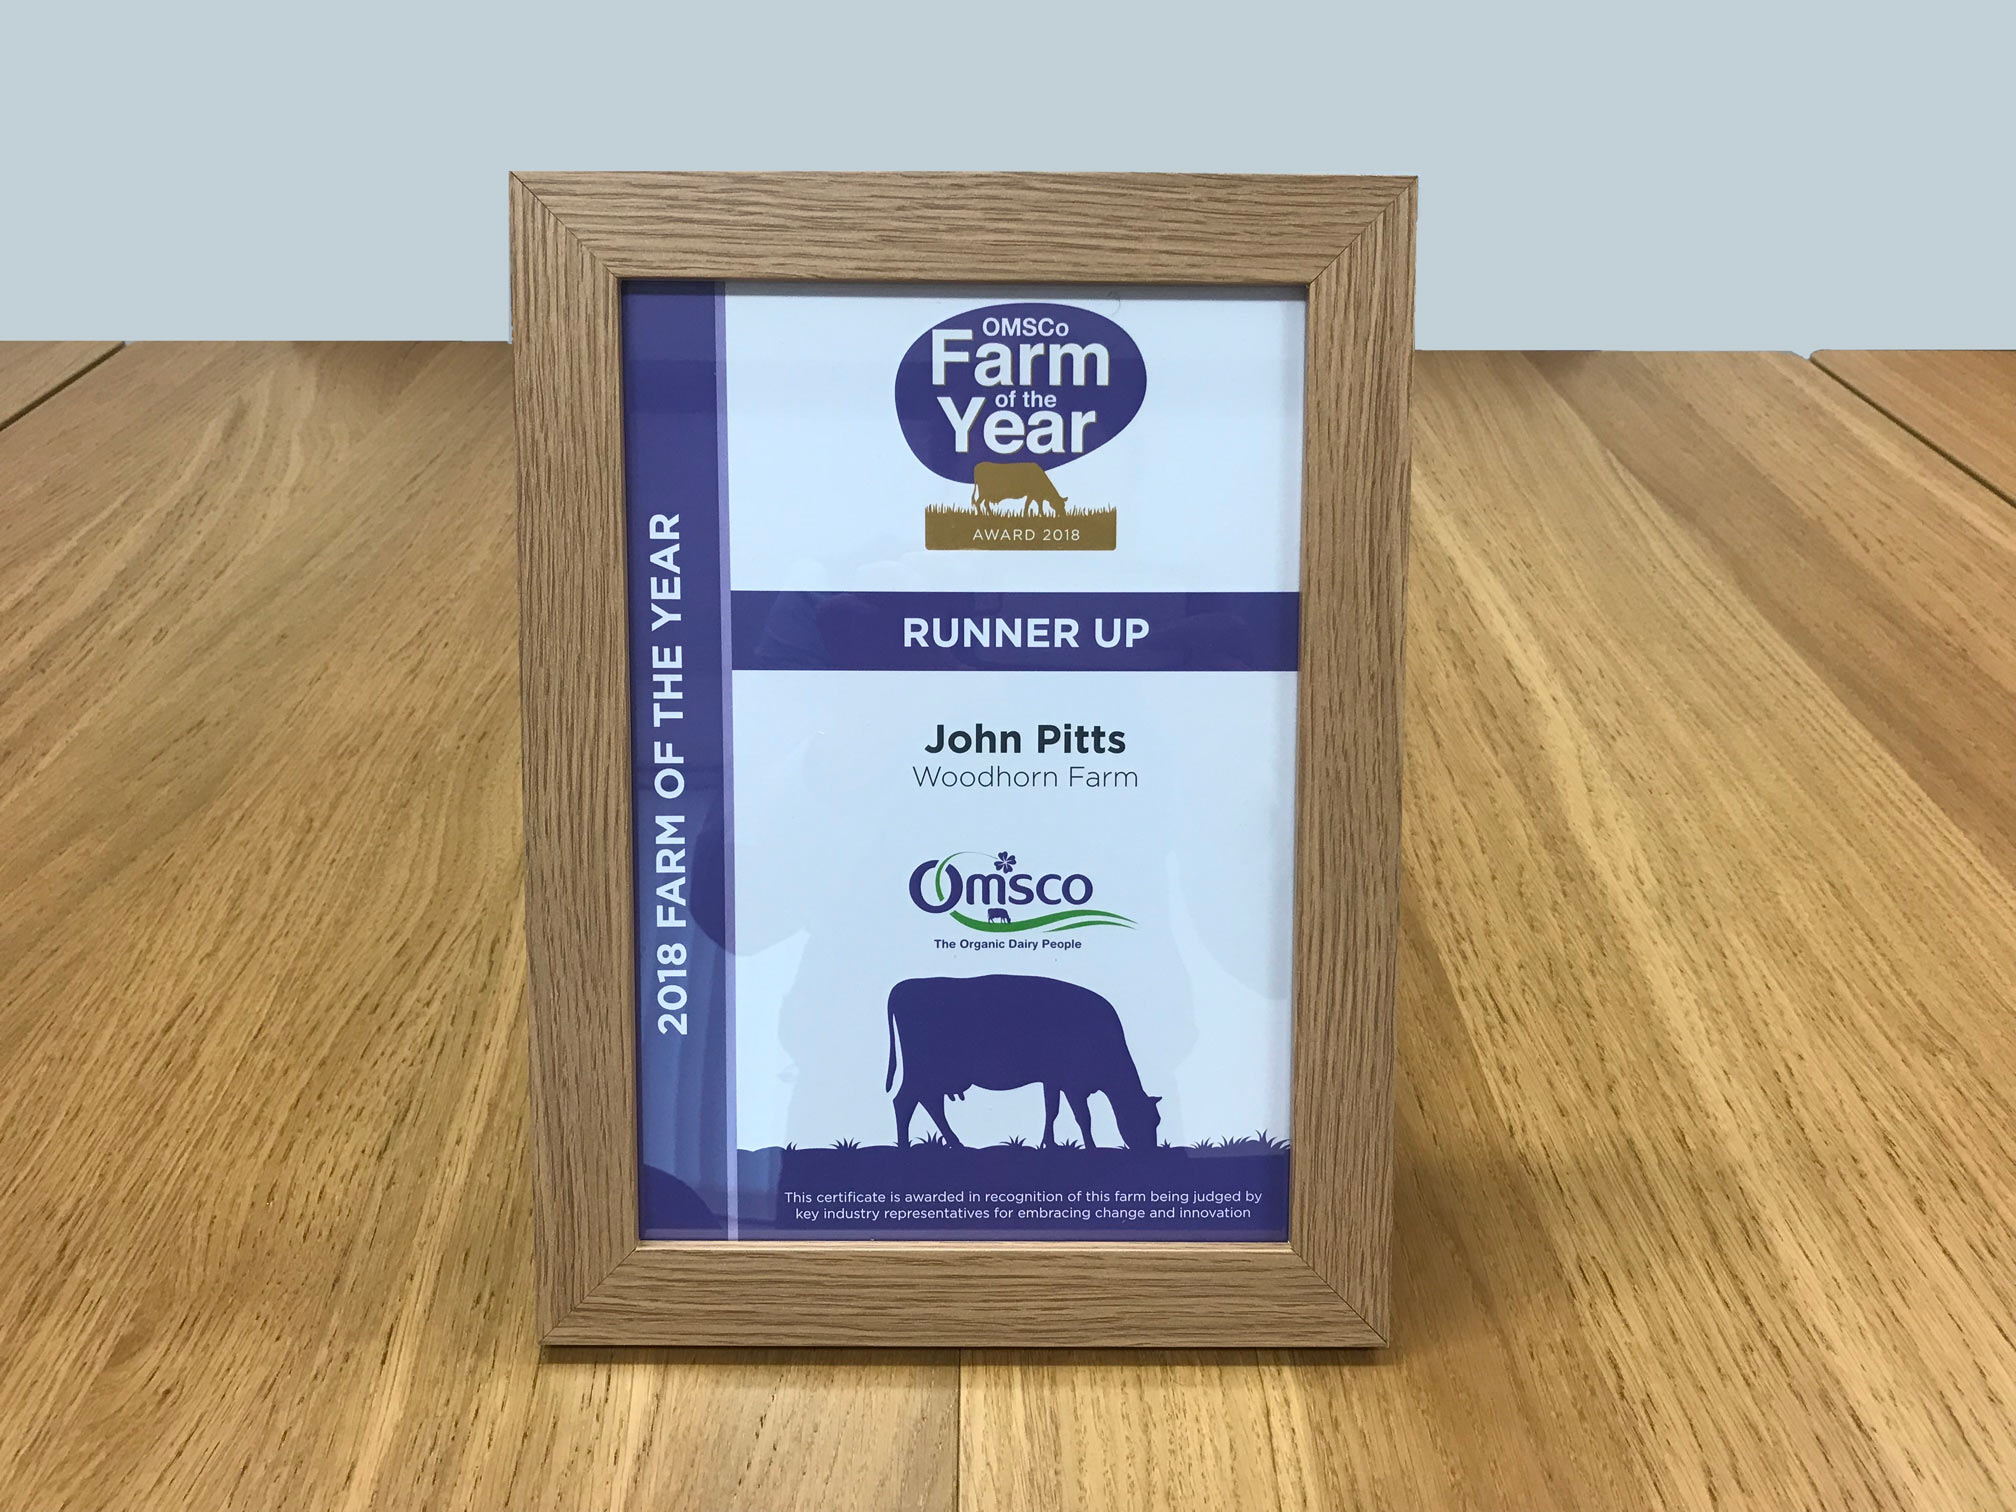 OMSCo Farm of the Year Awards 2018